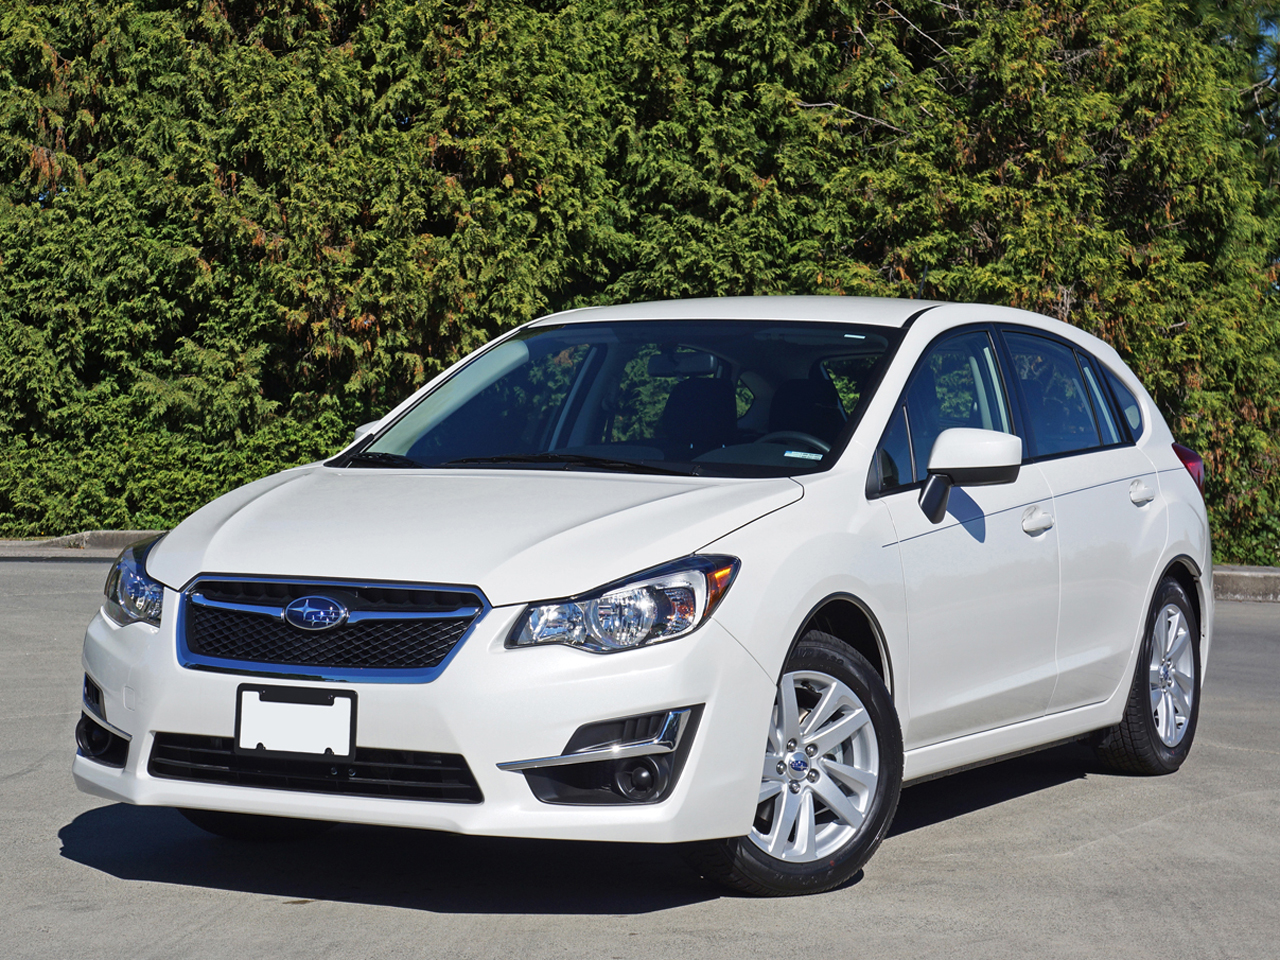 2016 Subaru Impreza 5-Door Touring Road Test Review | CarCostCanada™